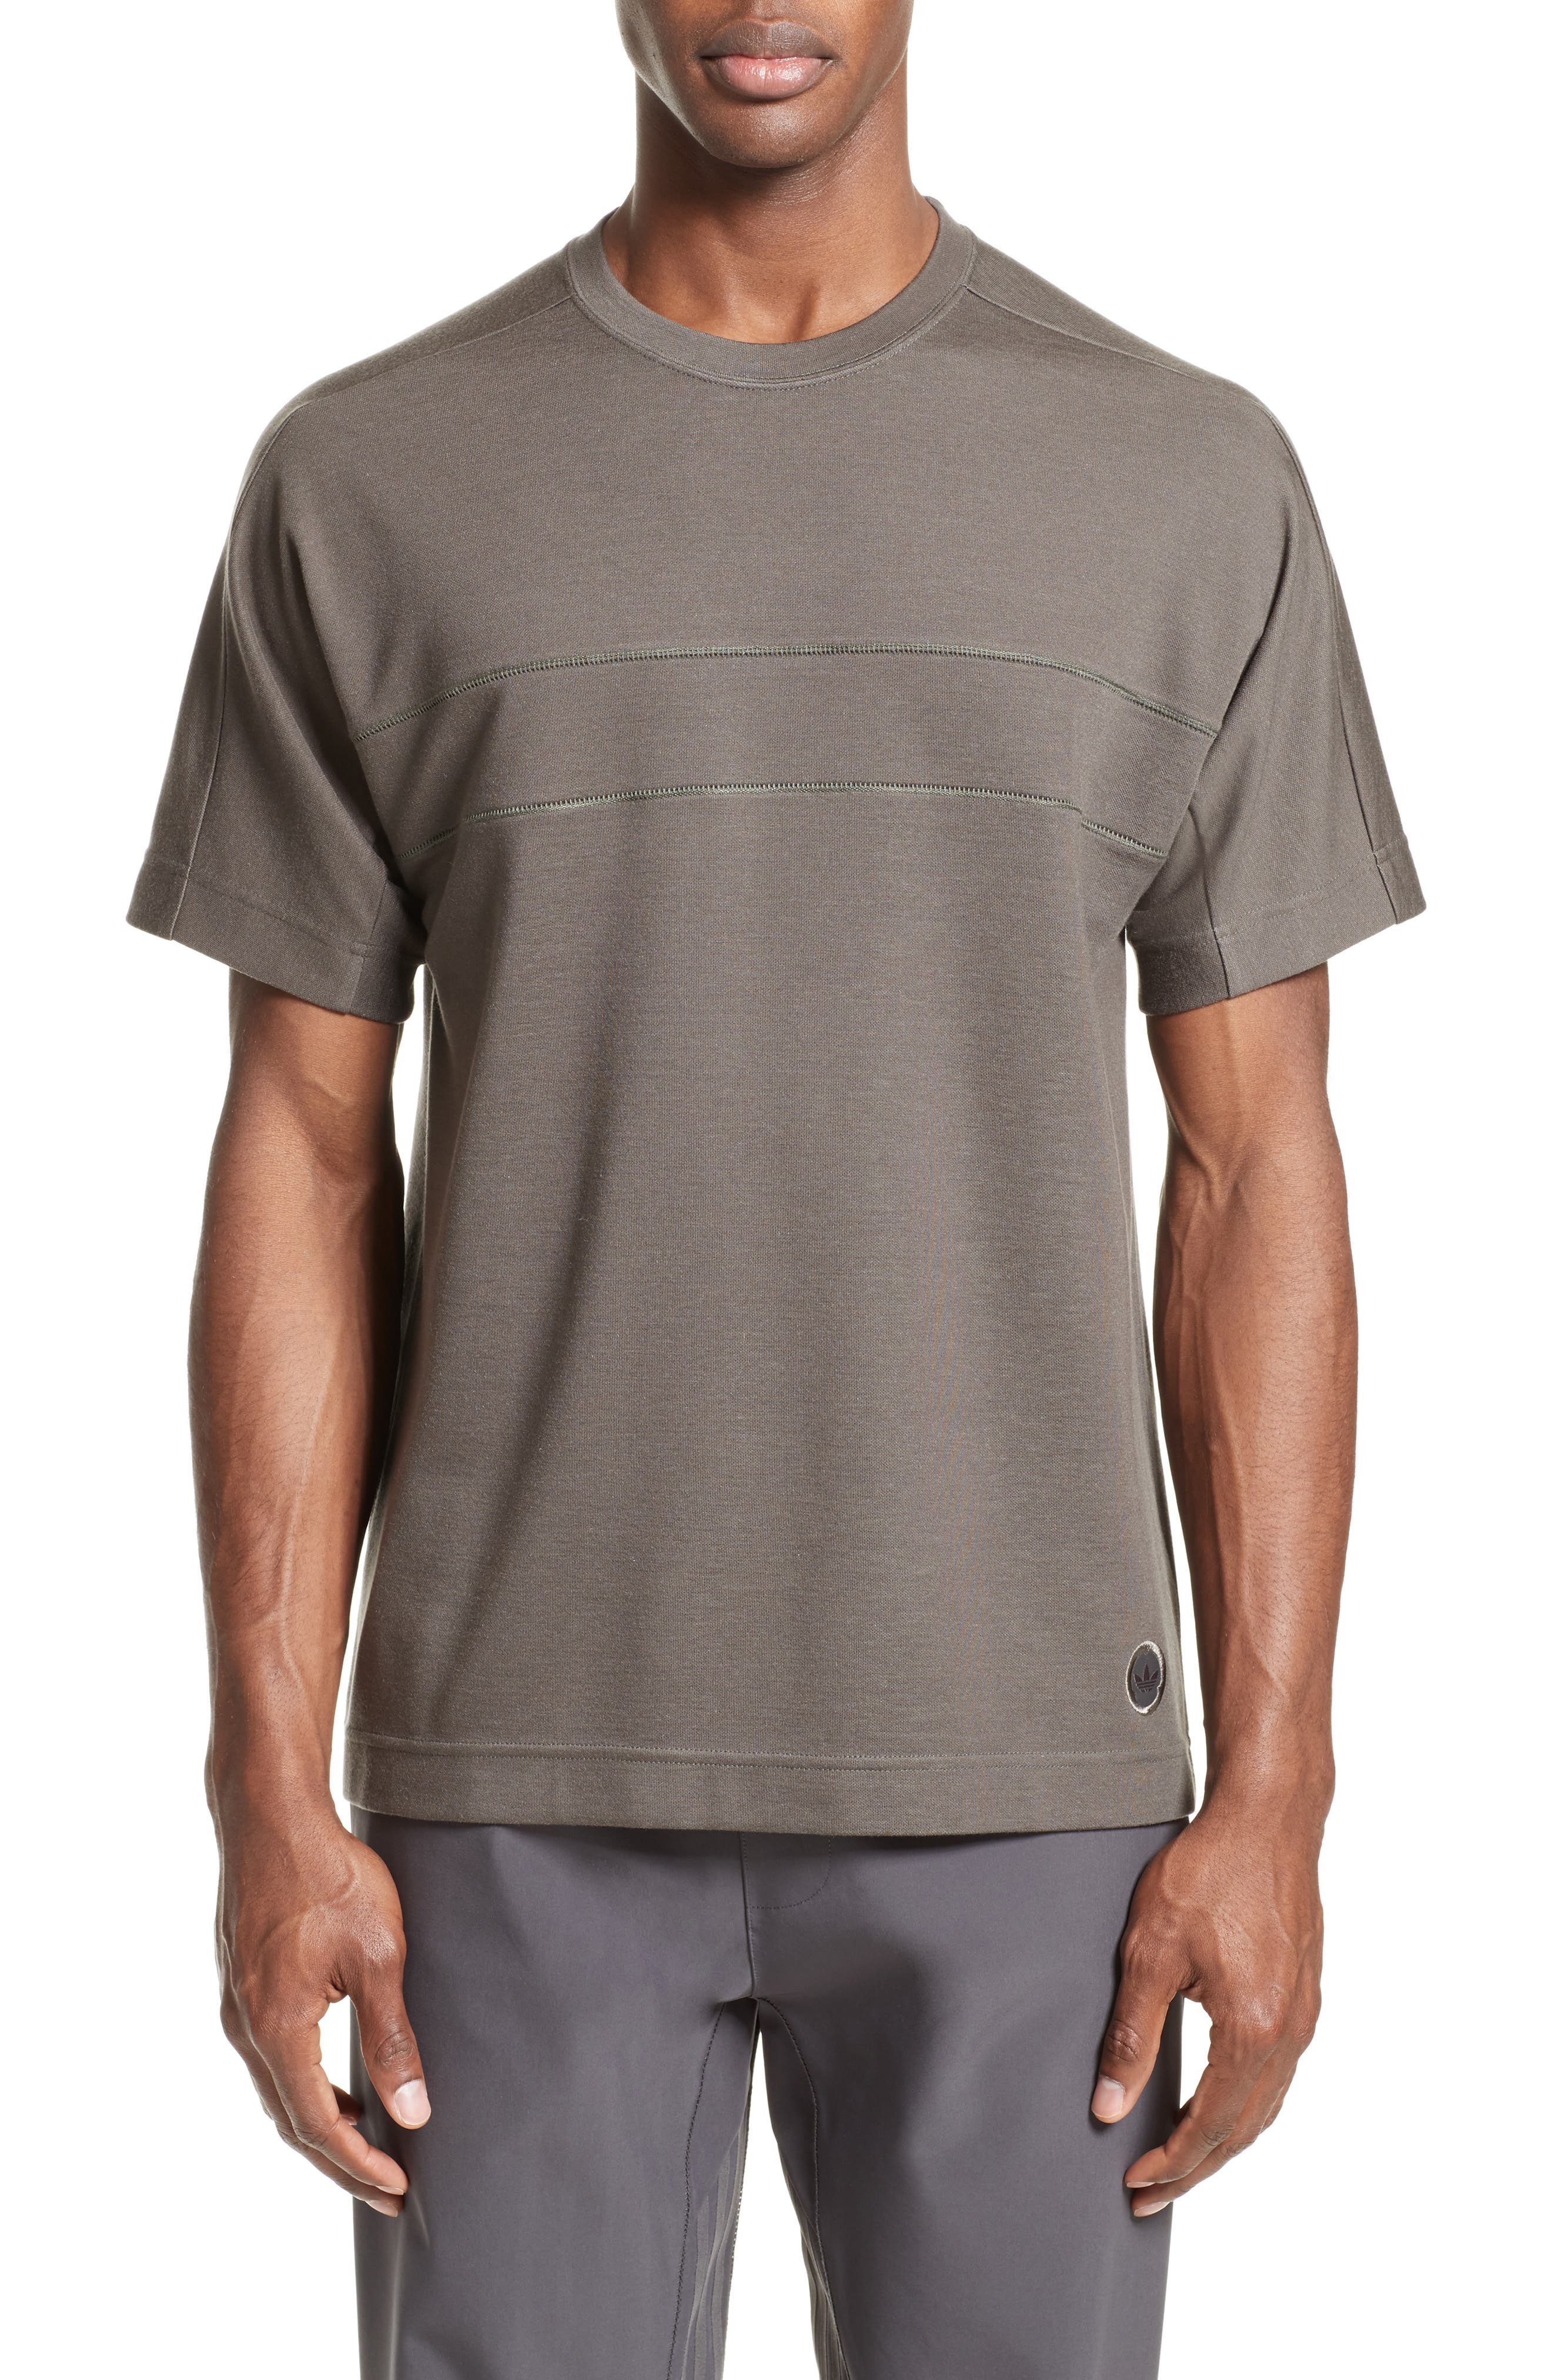 wings + horns x adidas Crewneck T-Shirt